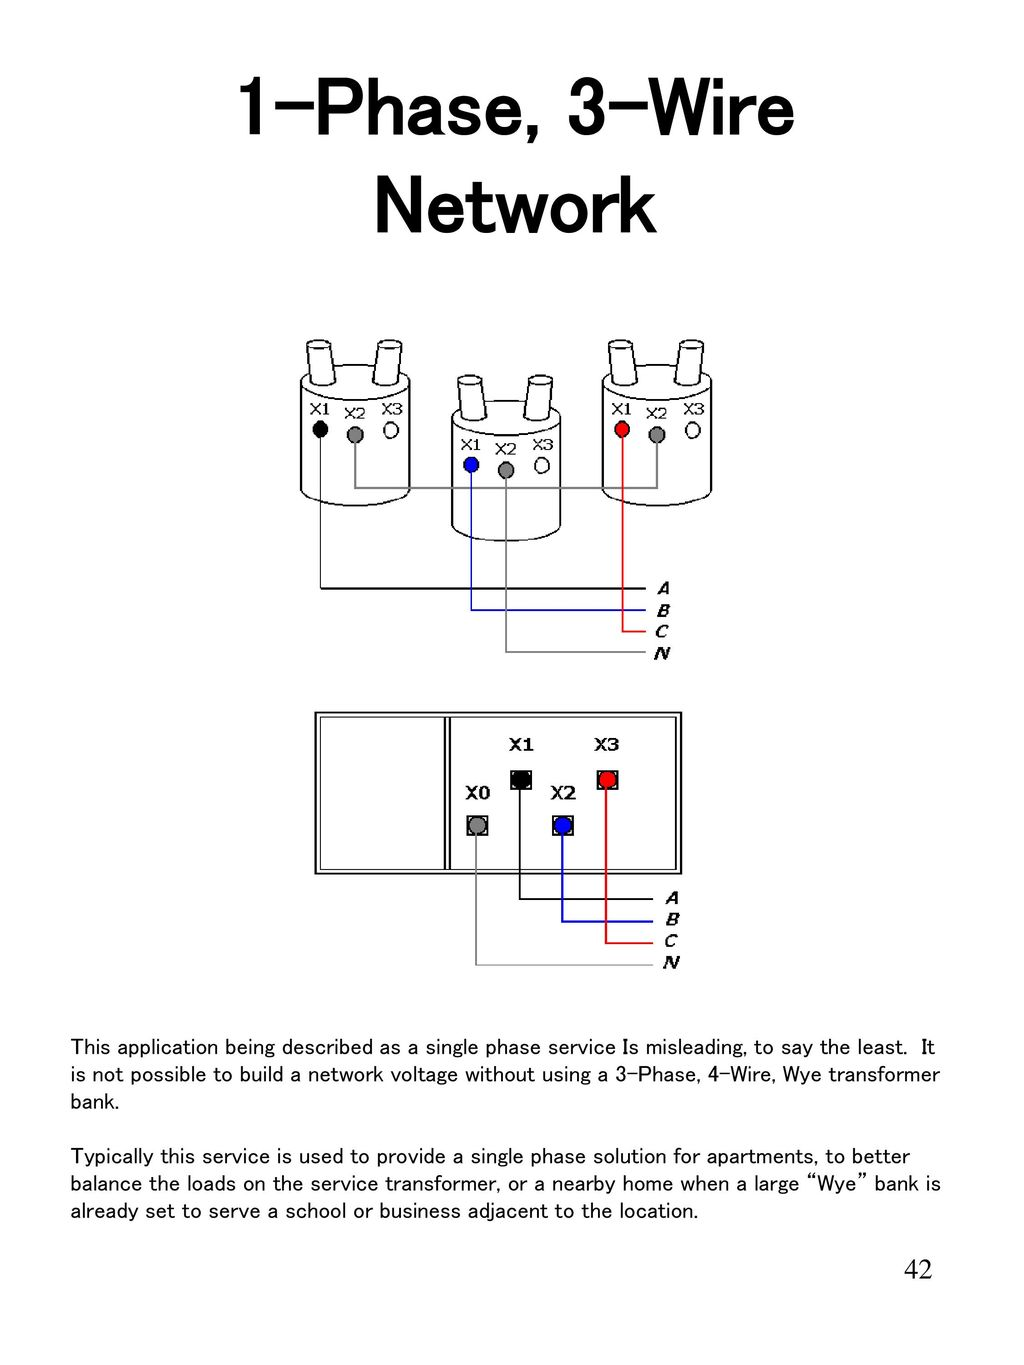 Metering In Todays World Ppt Download Single Phase Service Wiring Diagram 1 3 Wire Network